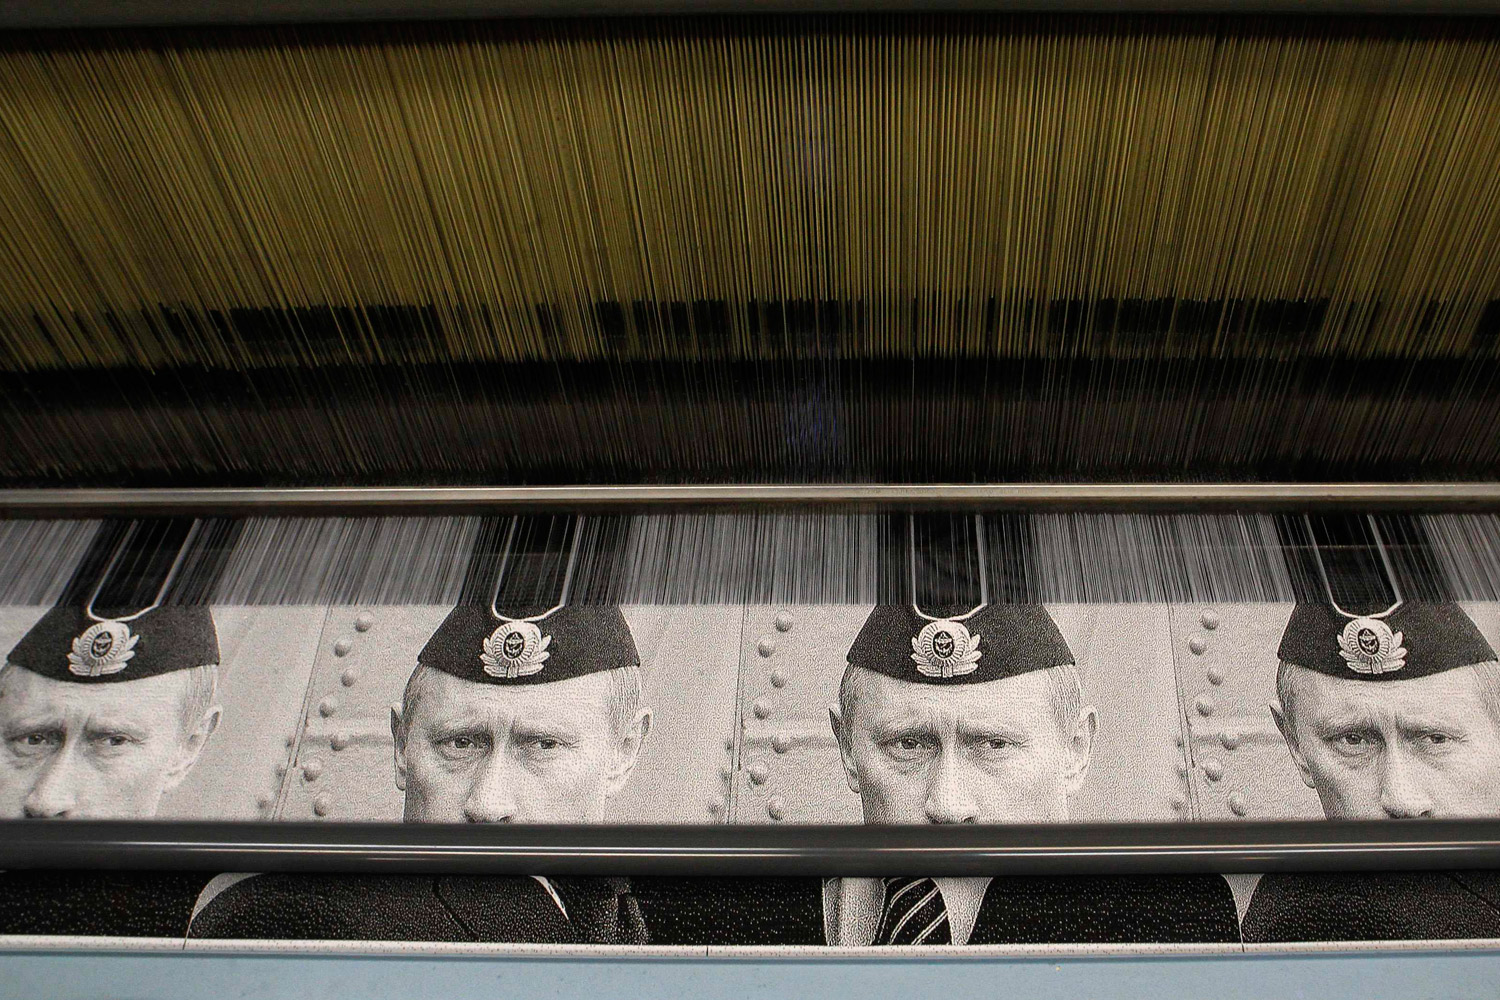 February 6, 2012. A machine works on the production of tapestry fabric, displaying the images of Russia's Prime Minister Vladimir Putin, at the Uzor weaving plant in the town of Vyritsa, north of St. Petersburg.